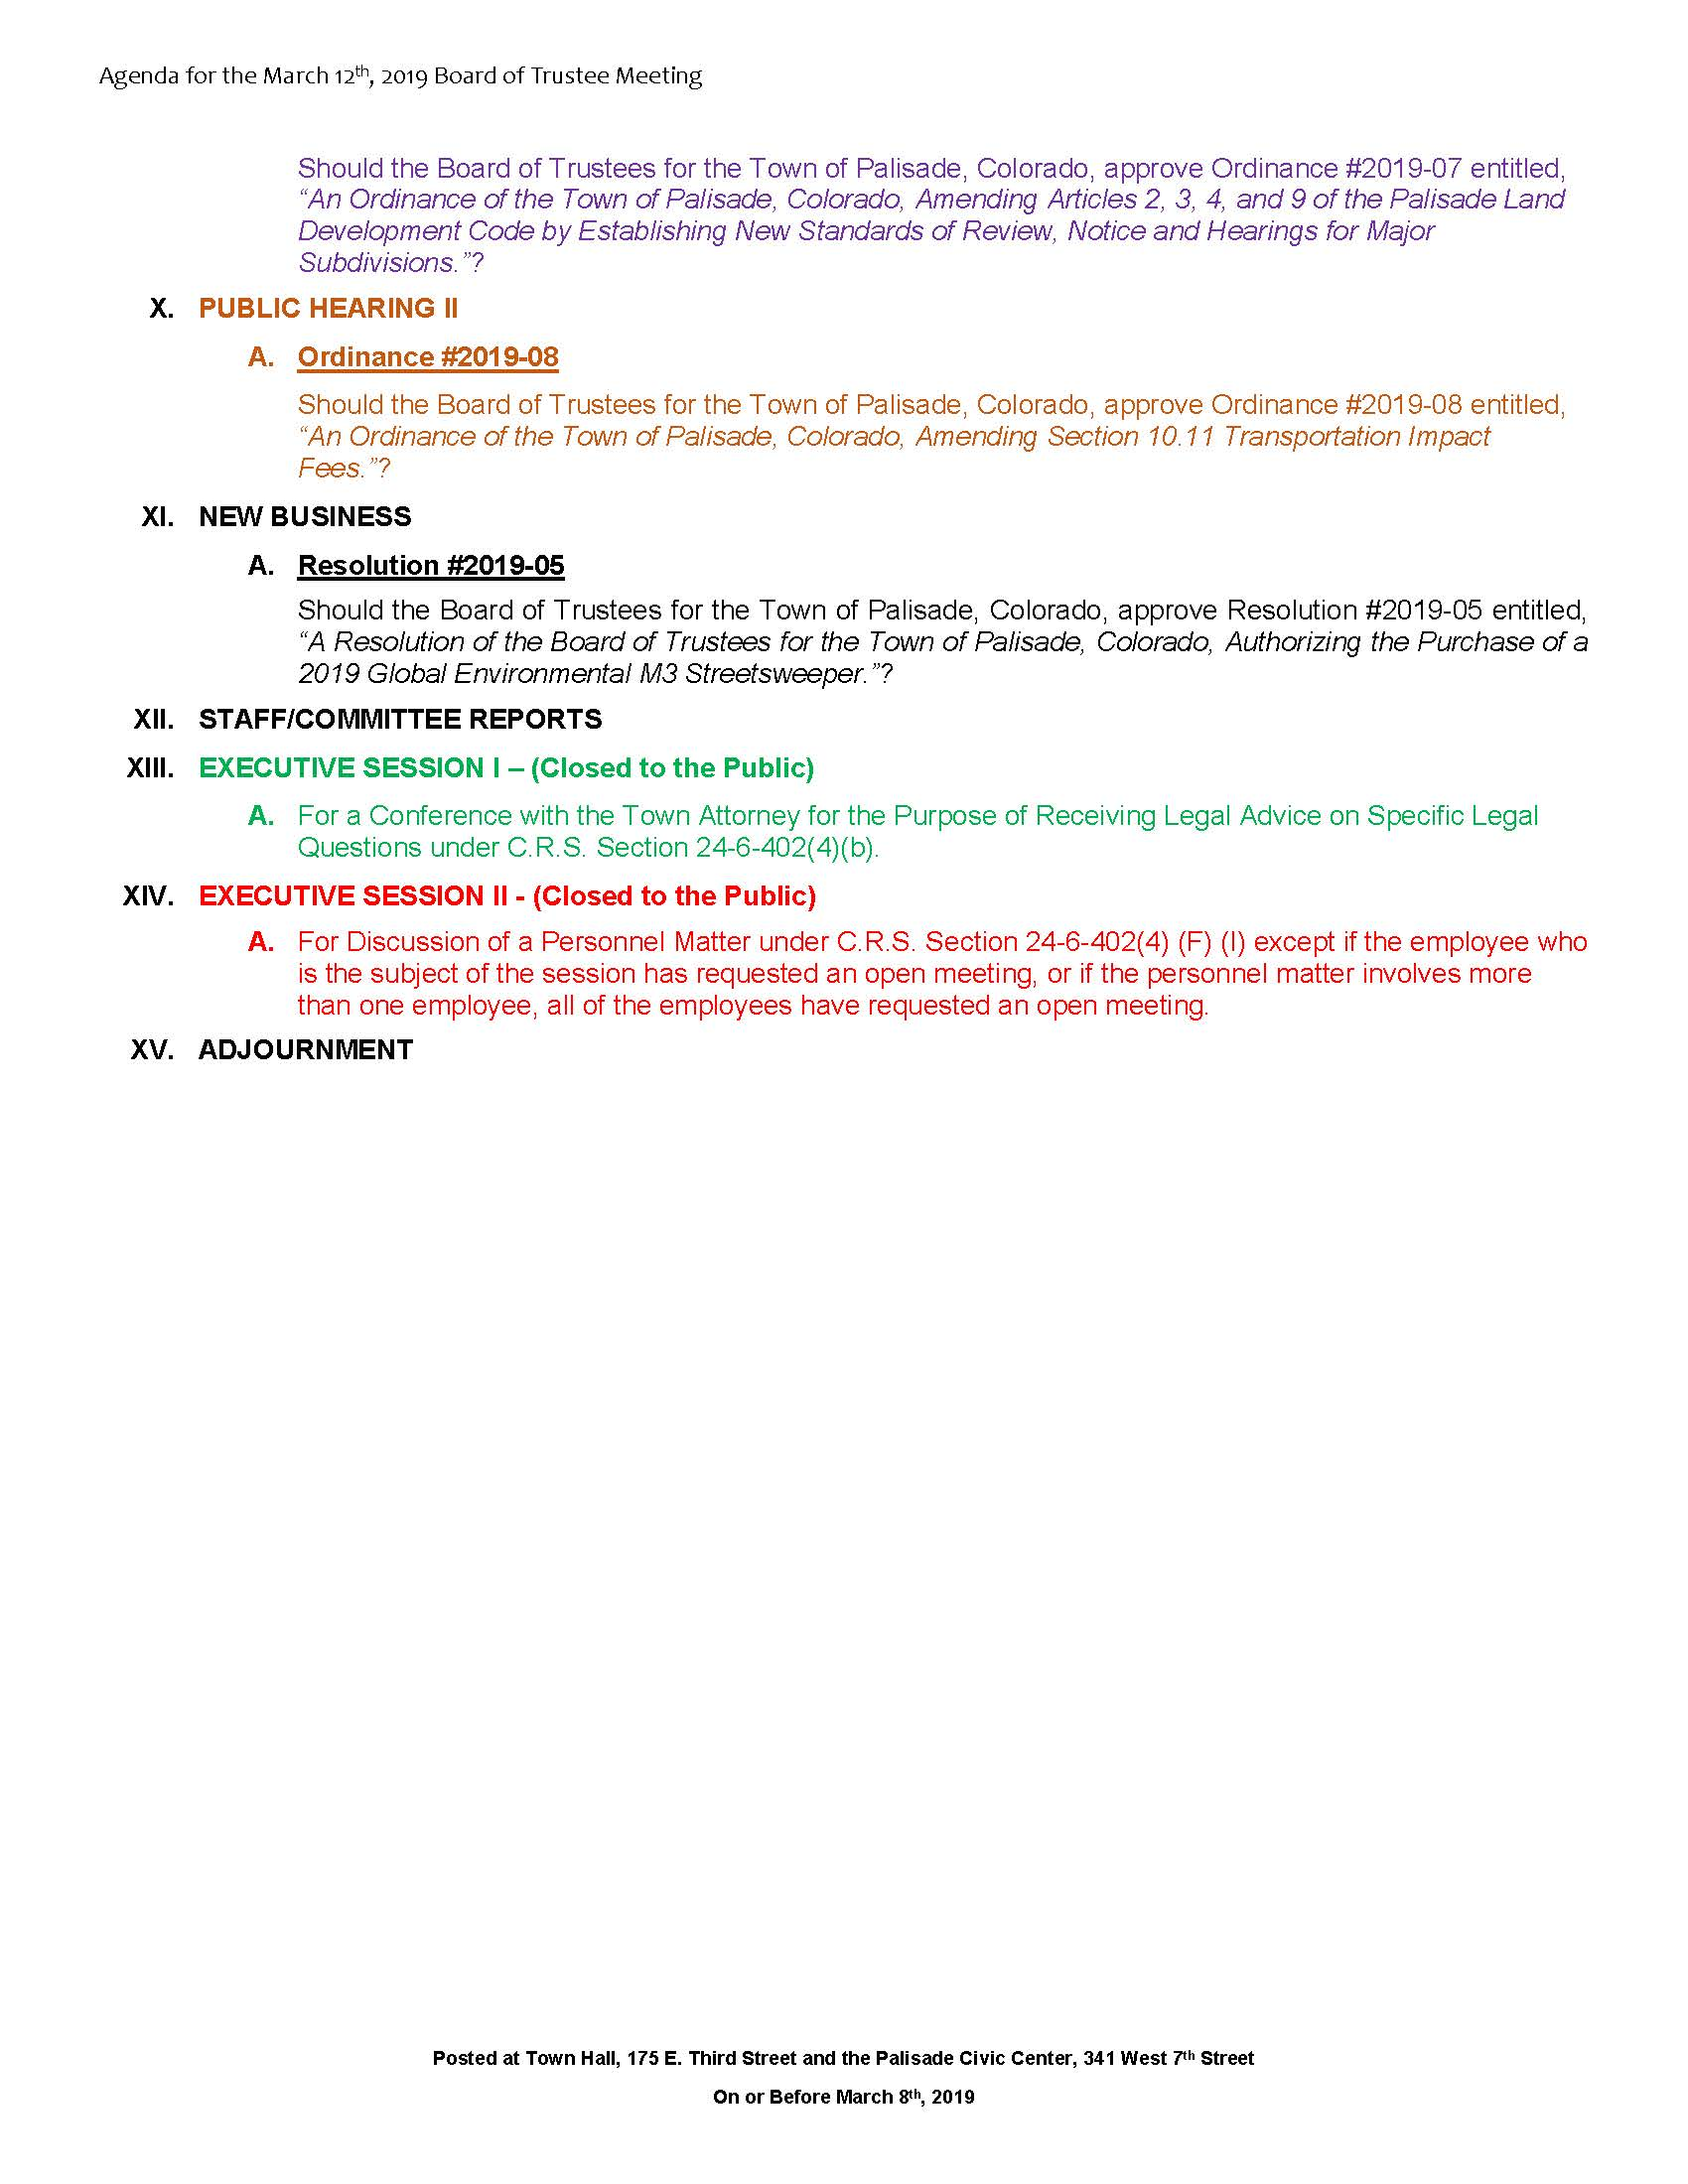 March 12th 2019 Board Meeting Agenda Page 2